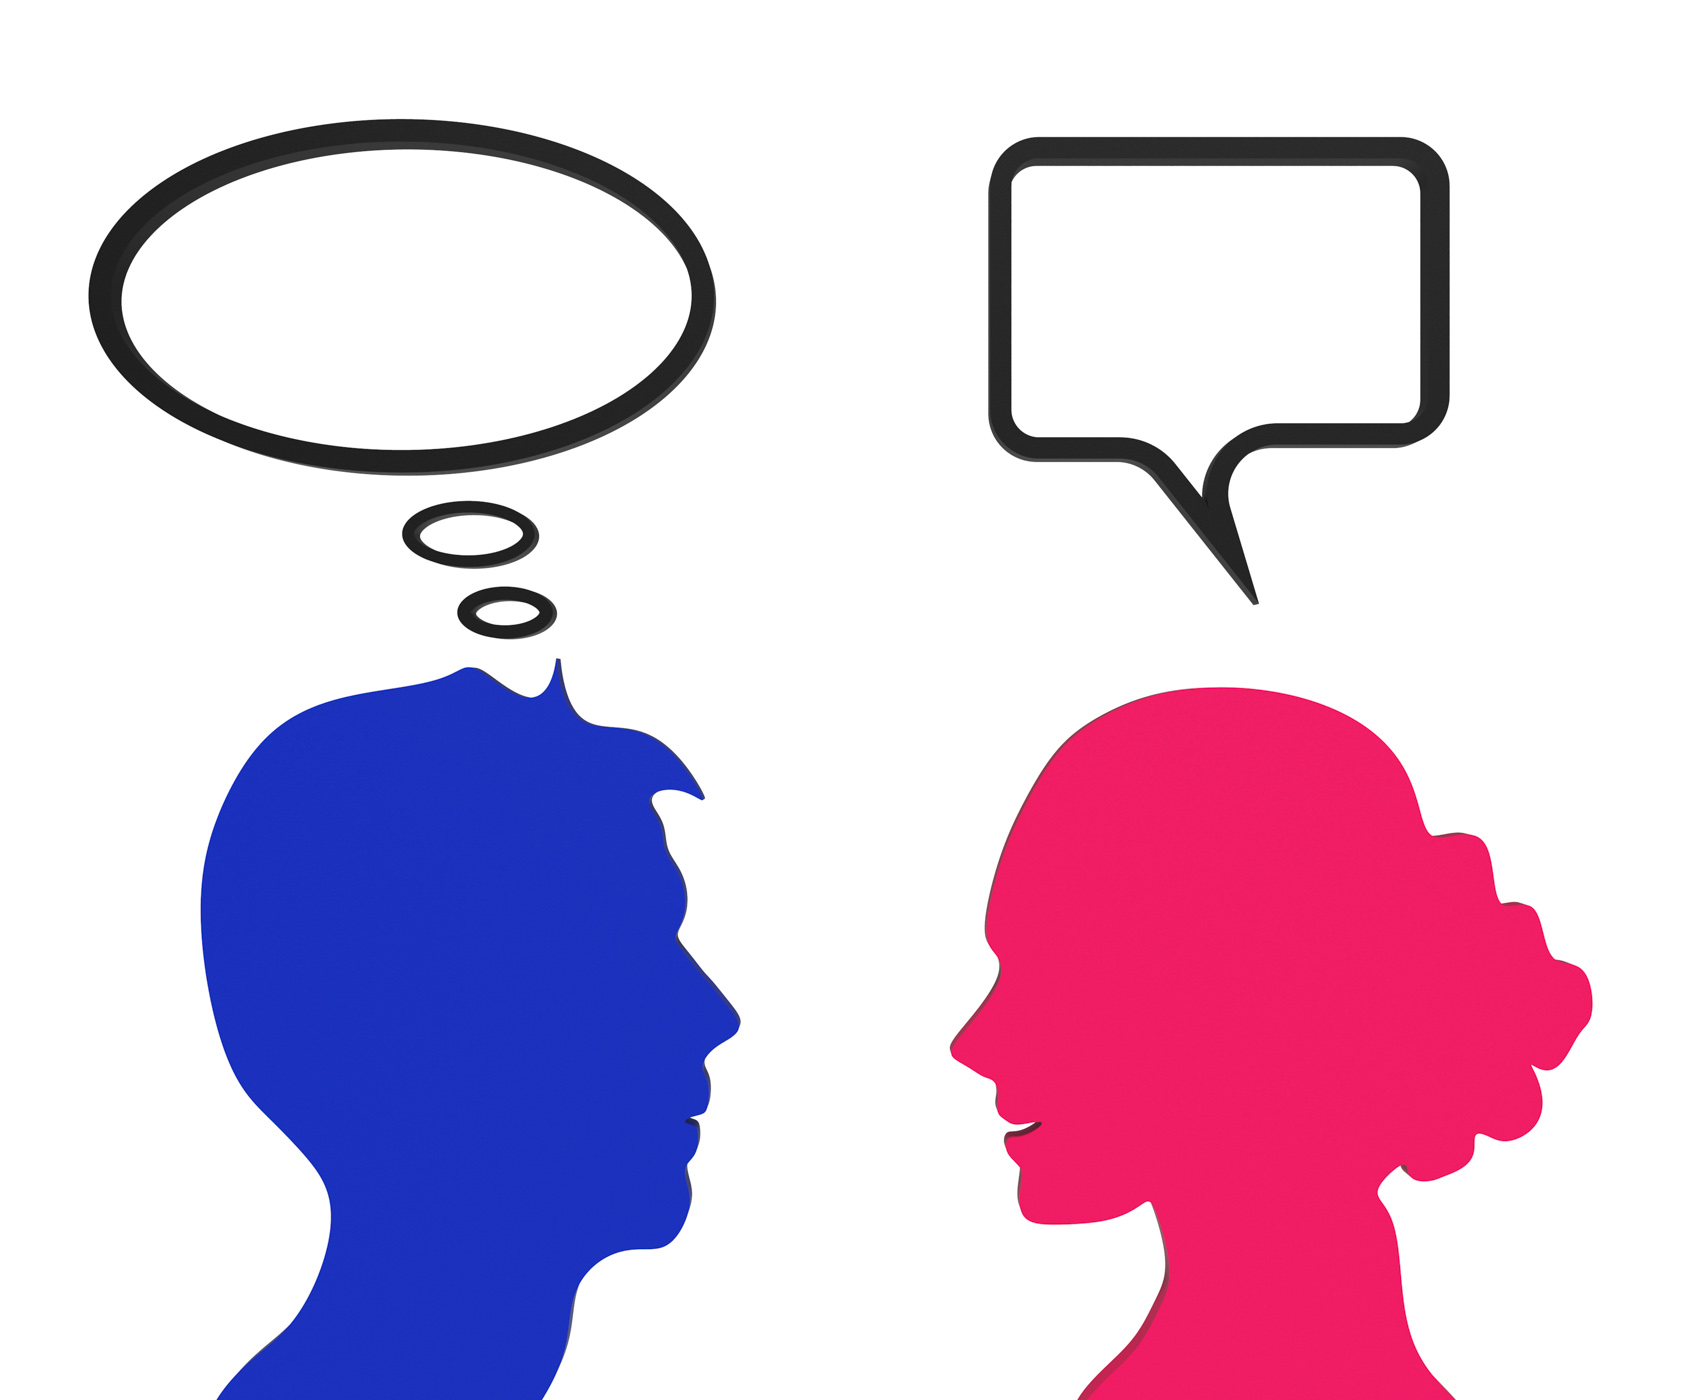 Speech Bubble Represents Think About It And Chat, About, Discussion, Talking, Speechbubble, HQ Photo